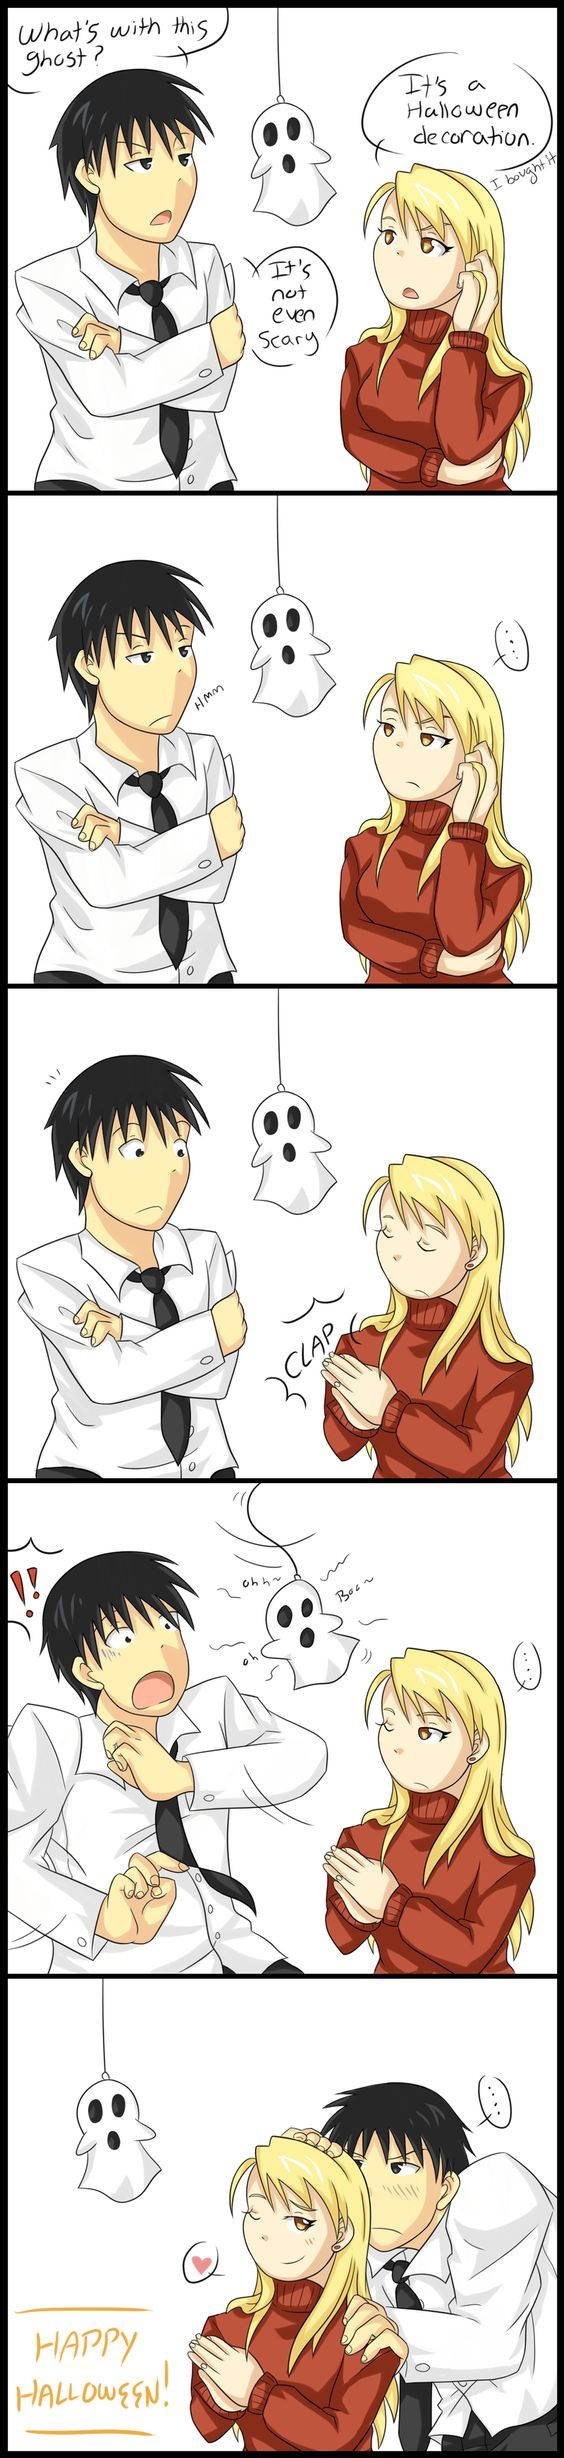 Image result for fmab roy scary